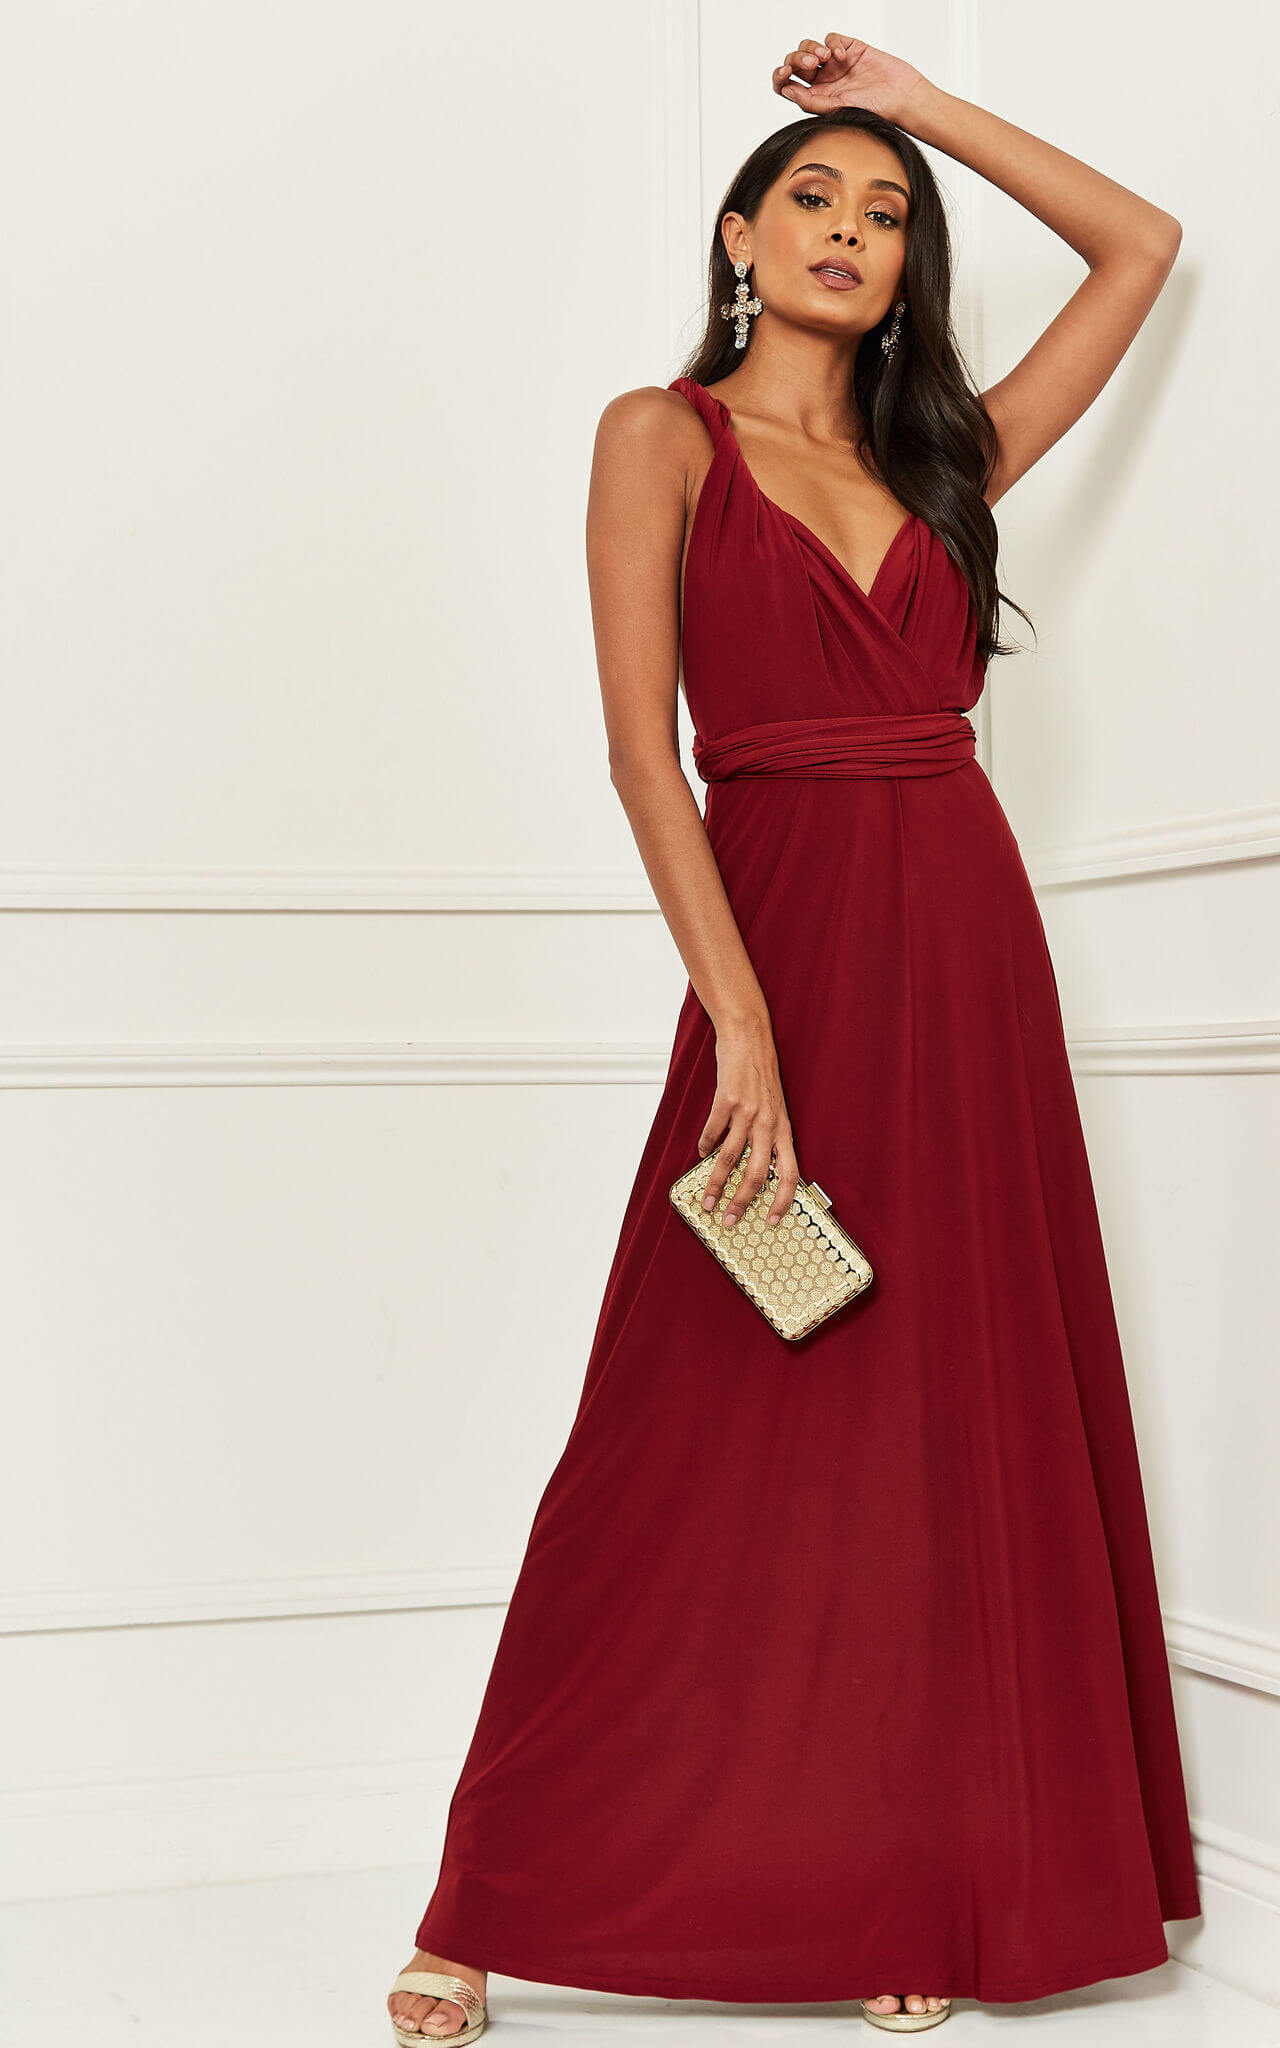 Model wears burgundy dress with multi-way straps and beaded clutch bag